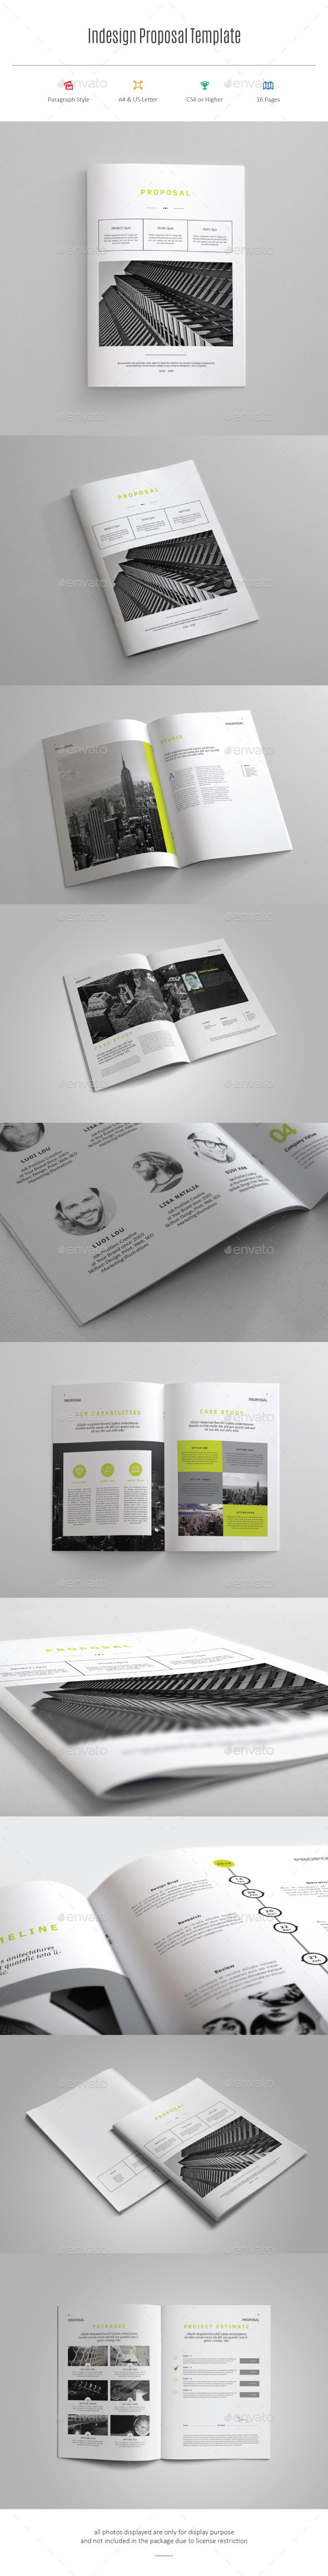 GraphicRiver Indesign Business Proposal 11453362